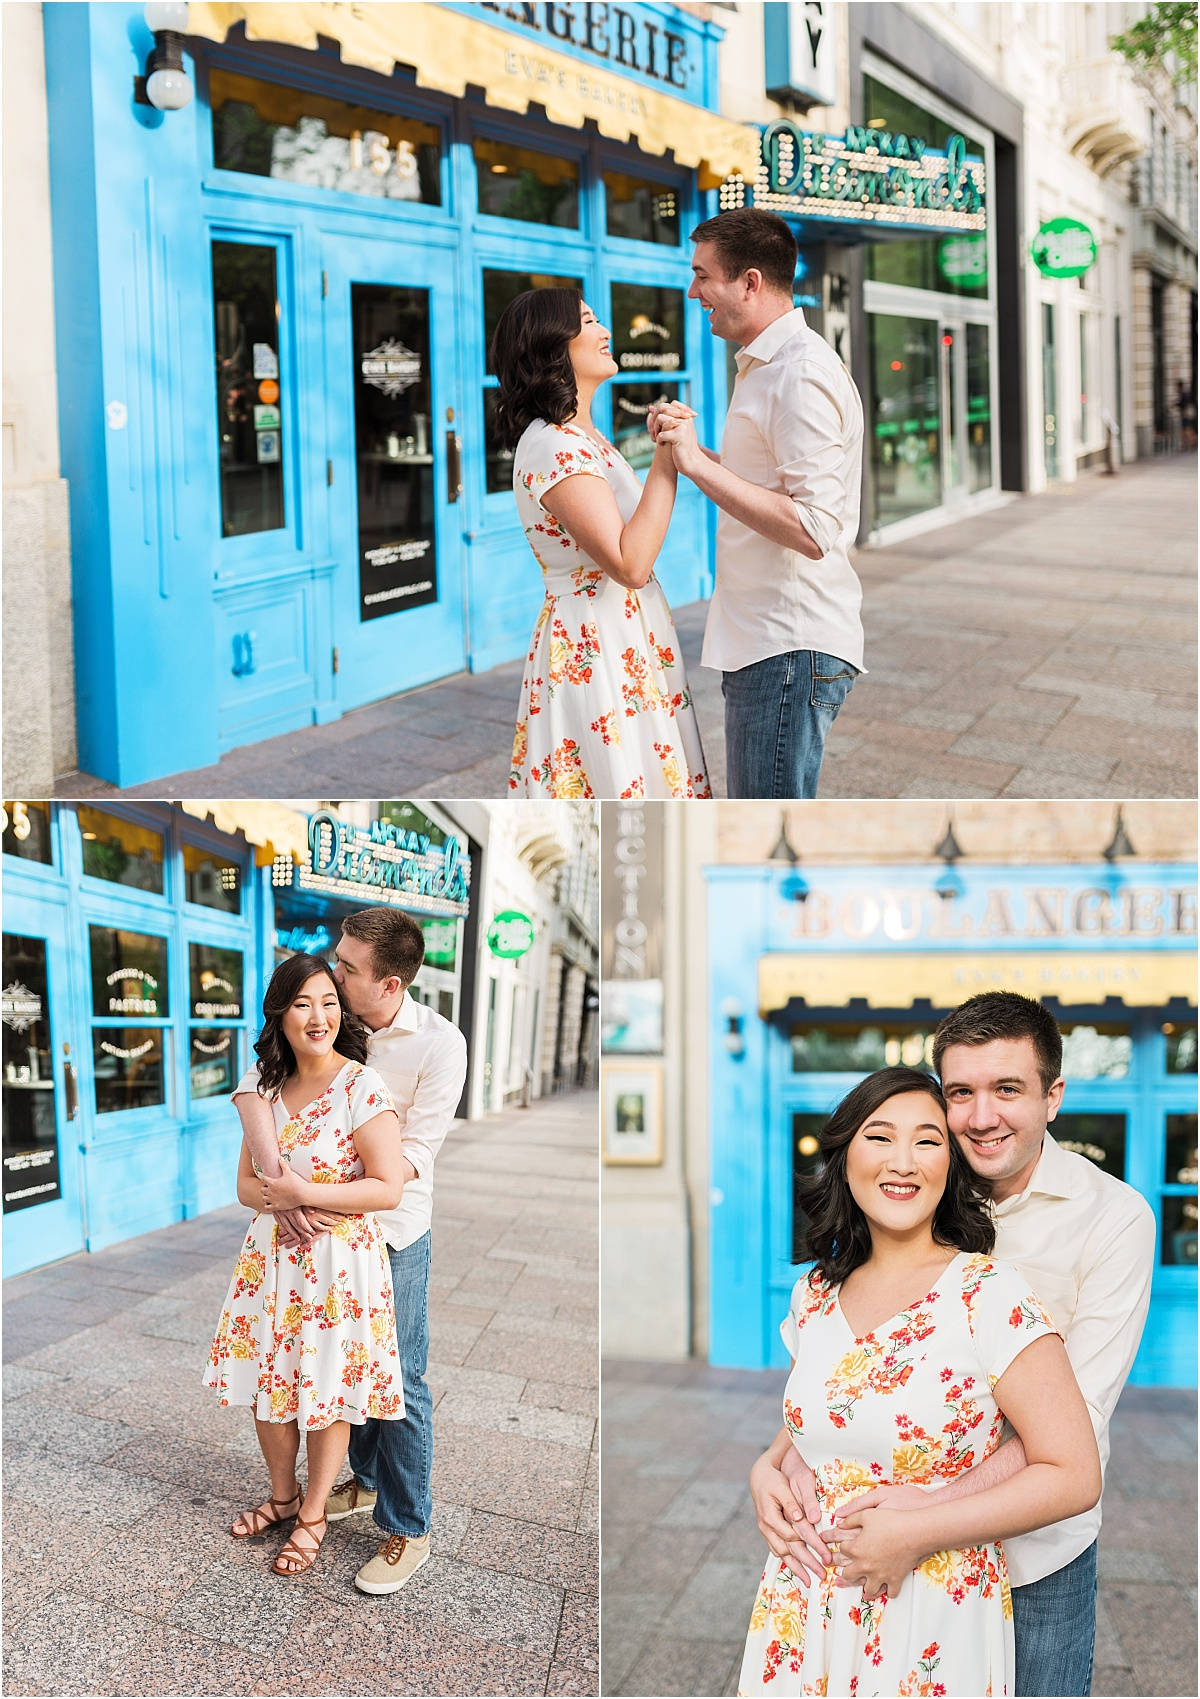 An engagement session in downtown Salt Lake City. The couple is standing in front of a bakery with a french design to it. The couple is hugging, laughing, and smiling at the camera.